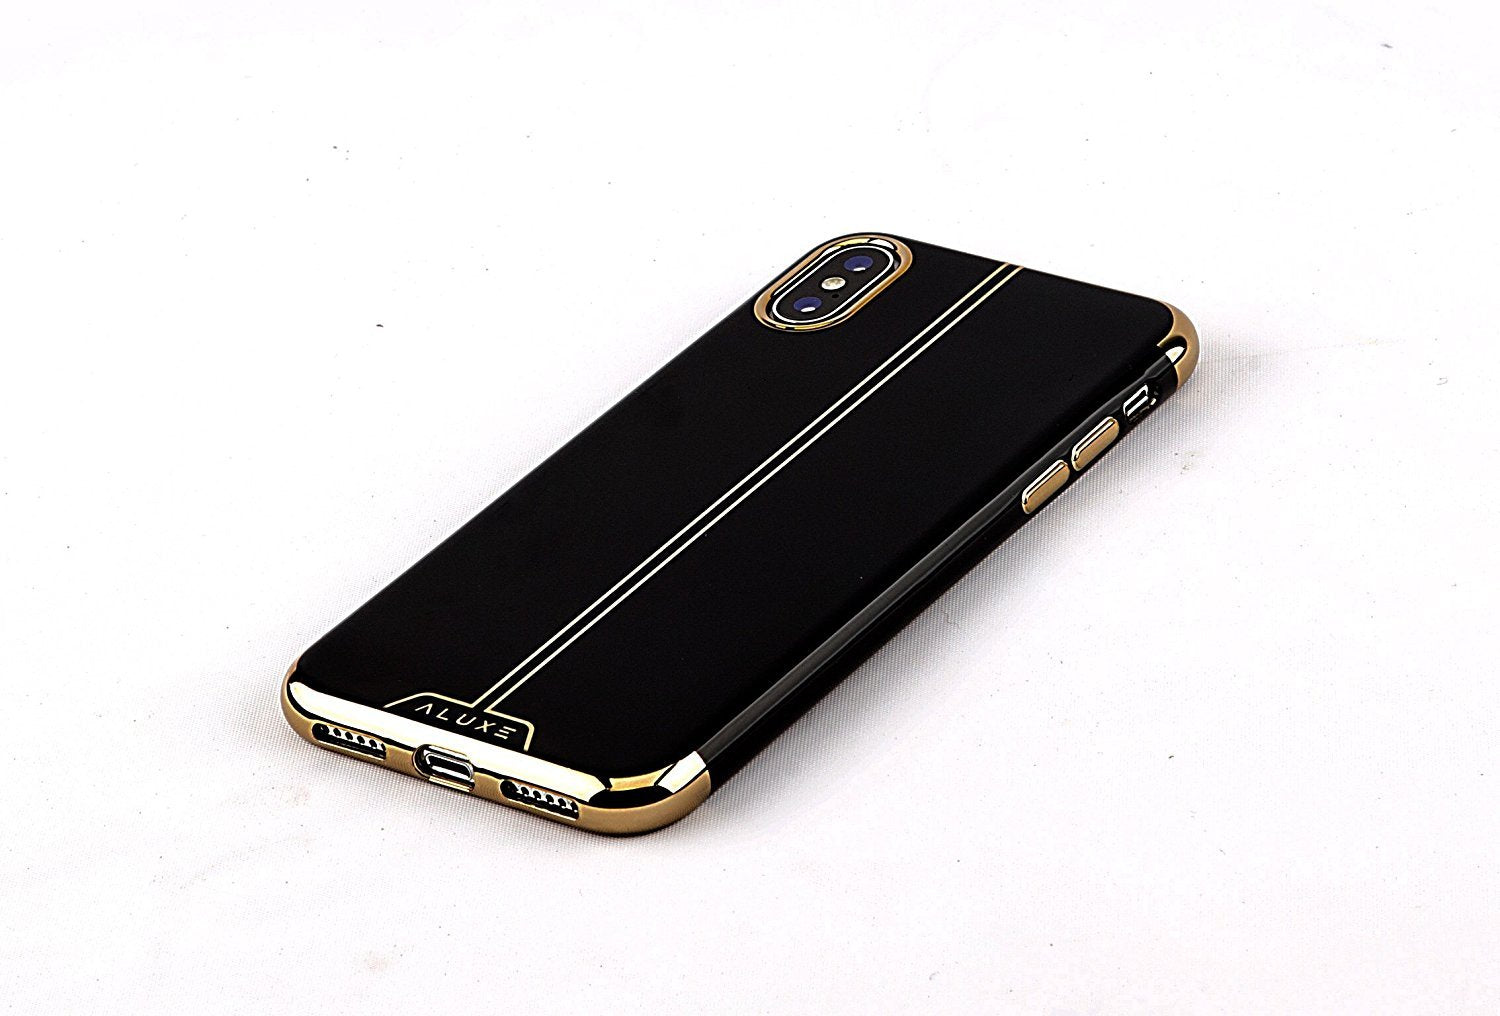 sports shoes 96dde 47134 Aluxe - iPhone X case Black and Gold designer / iPhone 10 Electroplated  Slim Fit Lightweight Soft TPU Cover- Ultra Durable luxury protective  Silicone ...